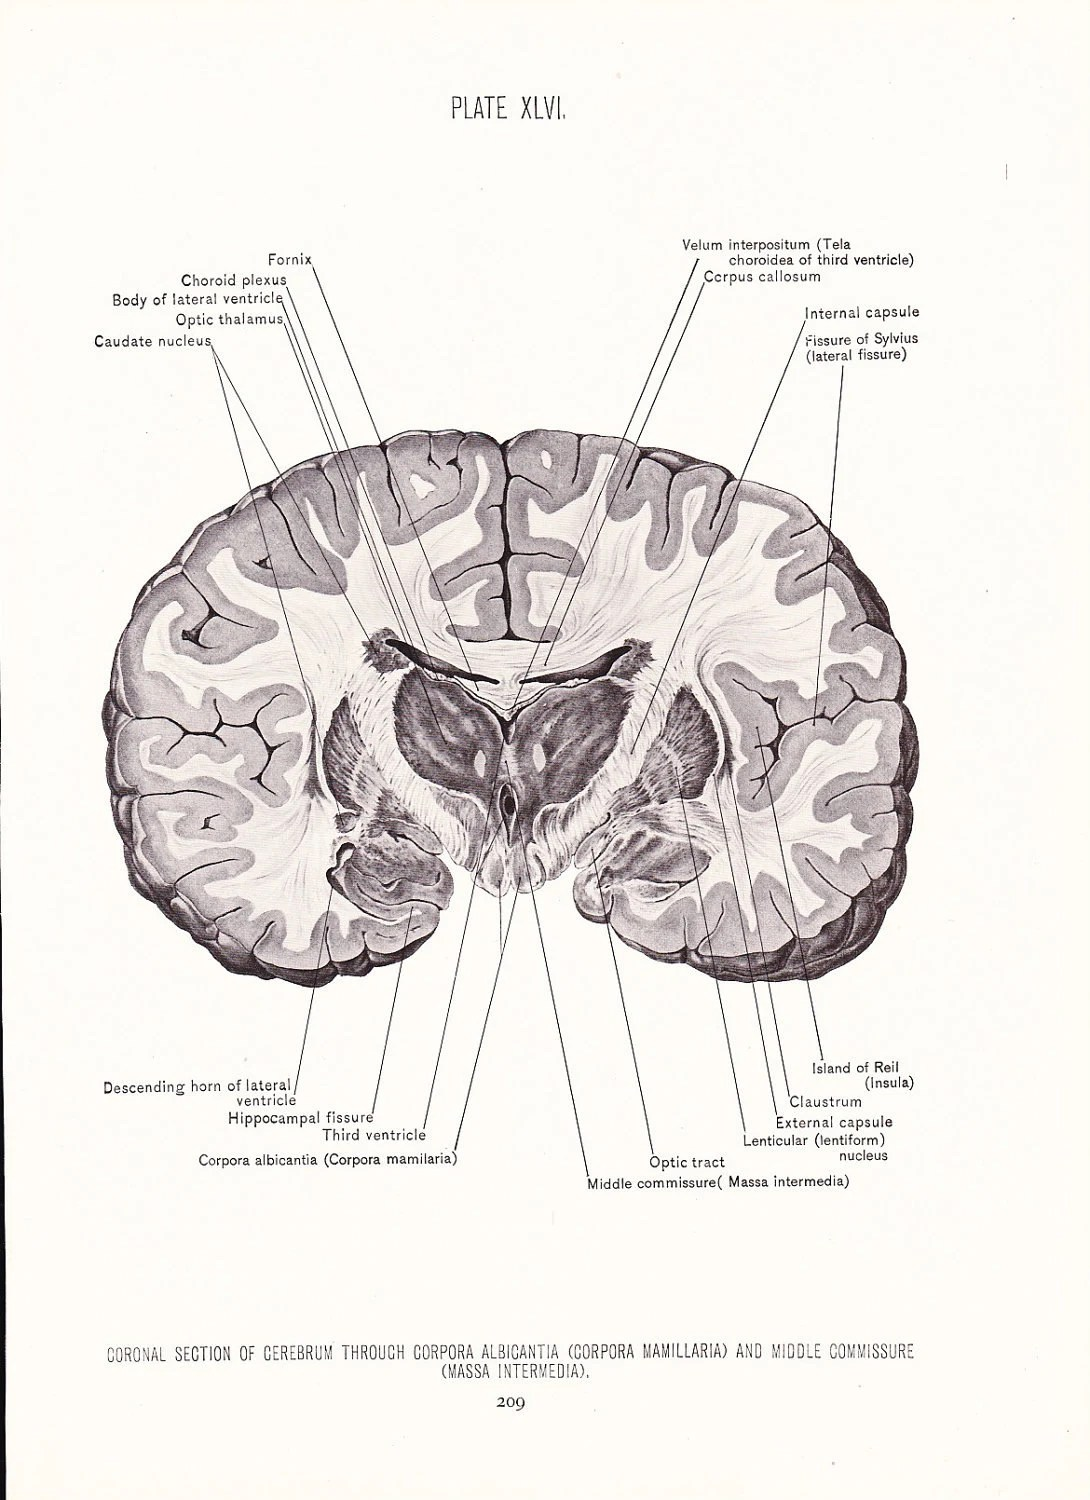 Human Anatomy Print Coronal Section Cerebrum Brain